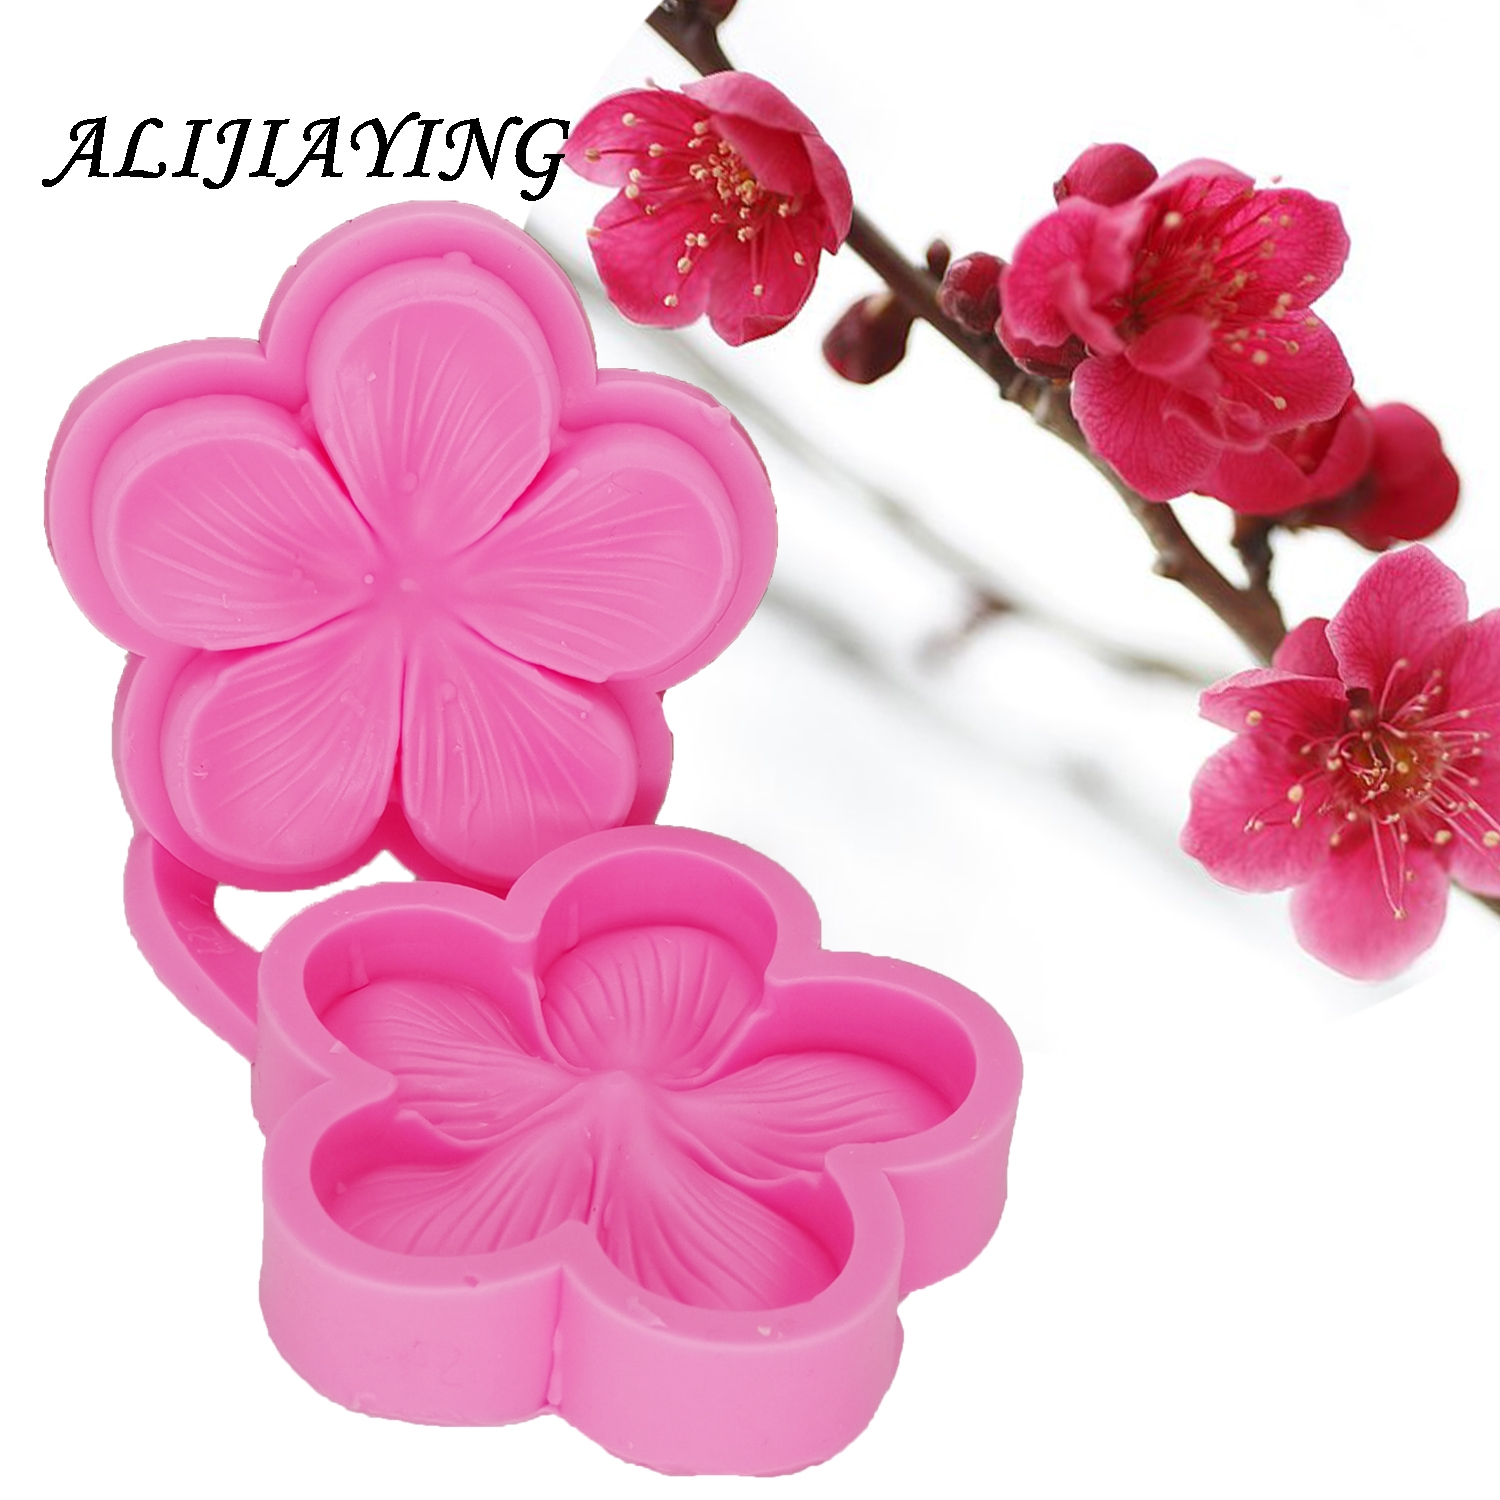 Plum Blossom Sugarcraft Silicone Mold Flower Fondant Mould Wedding Cake Decorating Tools Chocolate Mold D1302(China)